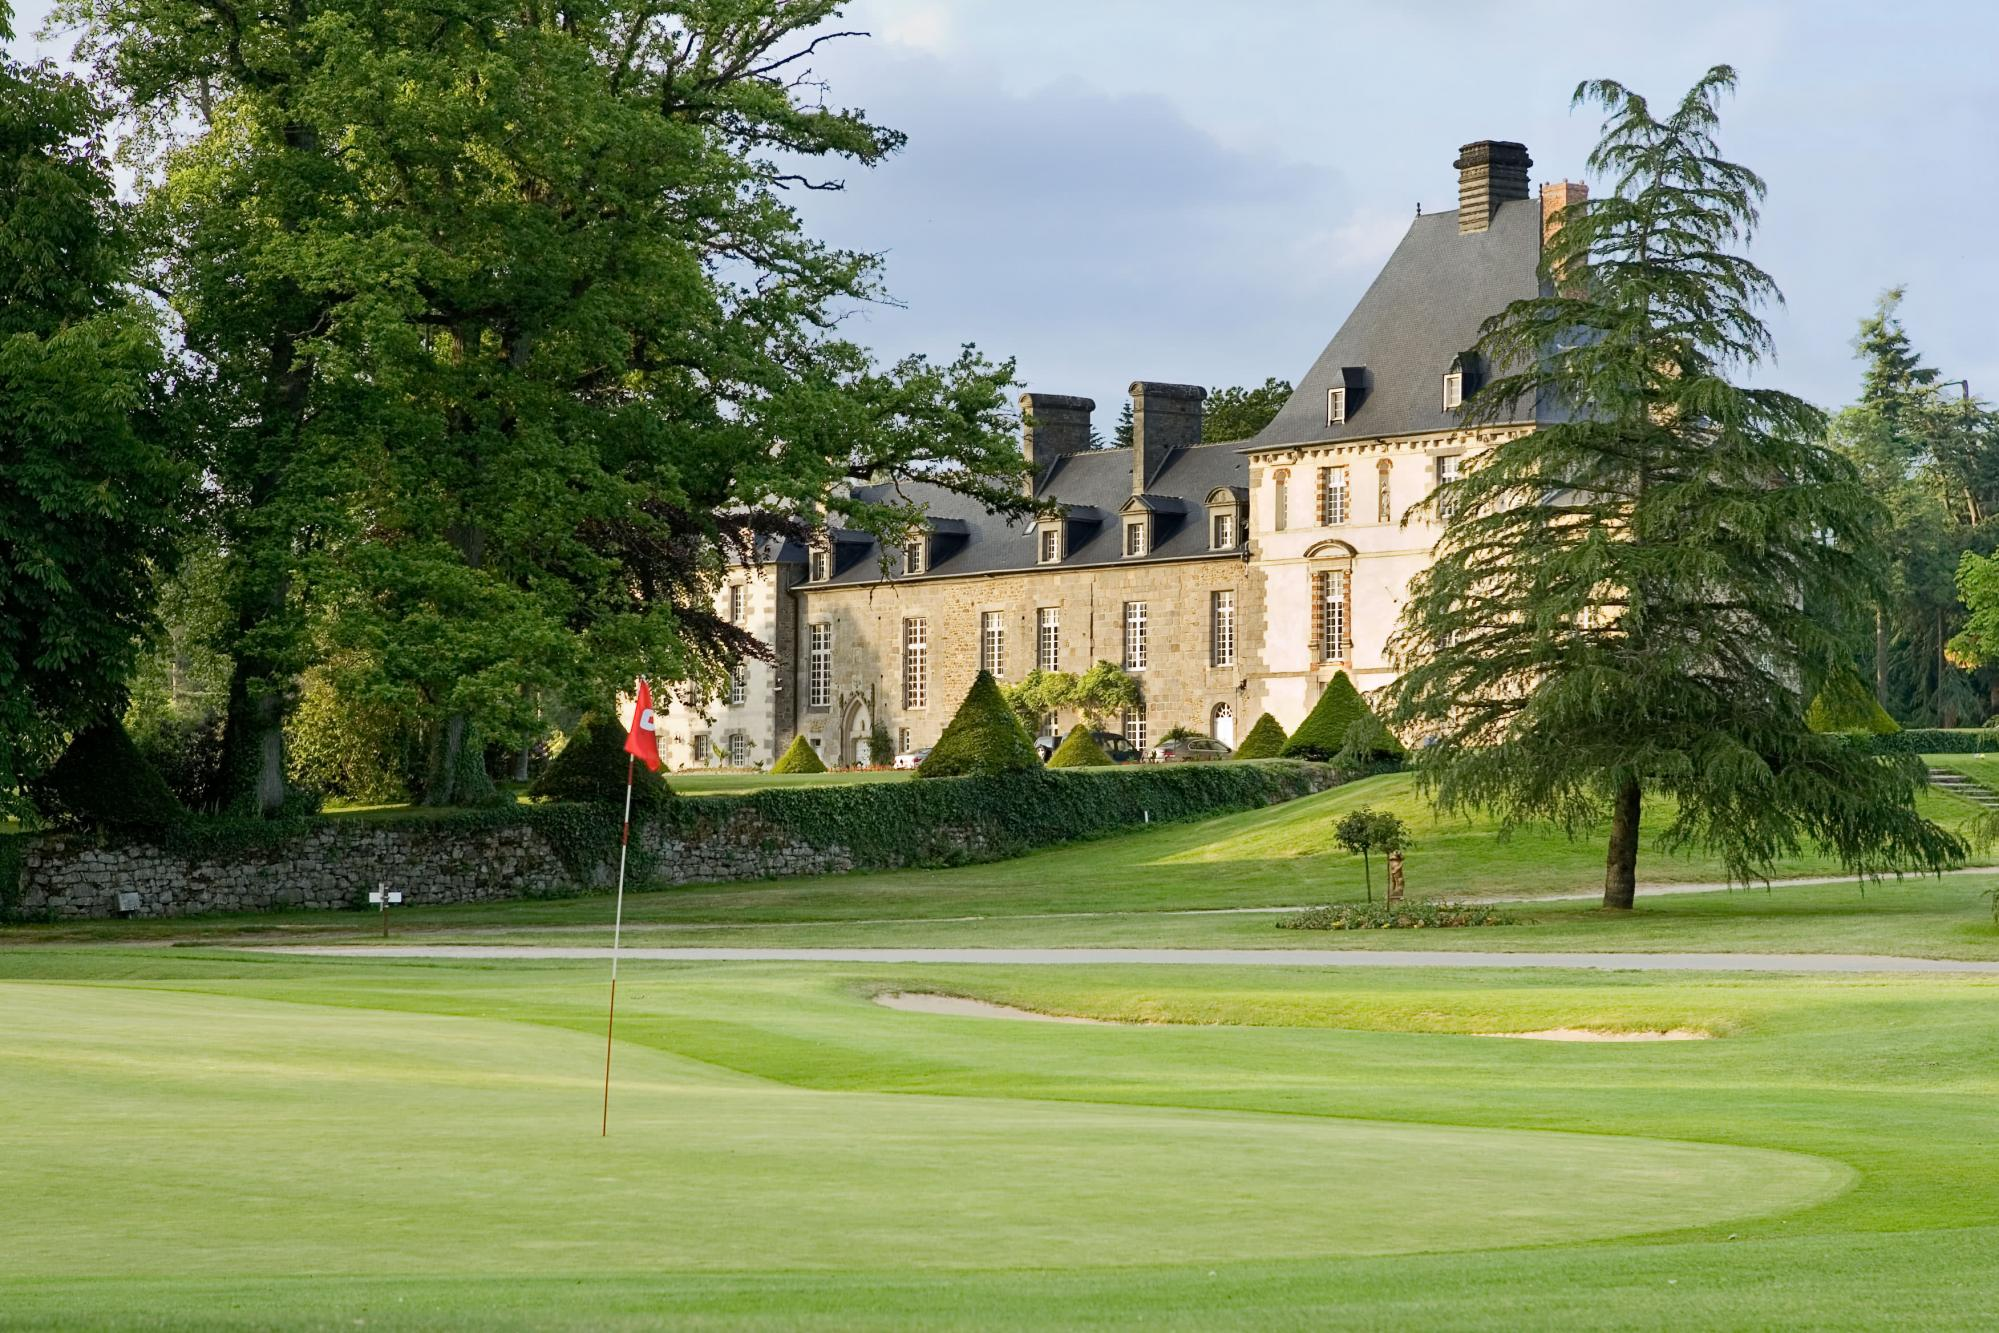 The Golf Les Ormes's lovely golf course situated in marvelous Brittany.